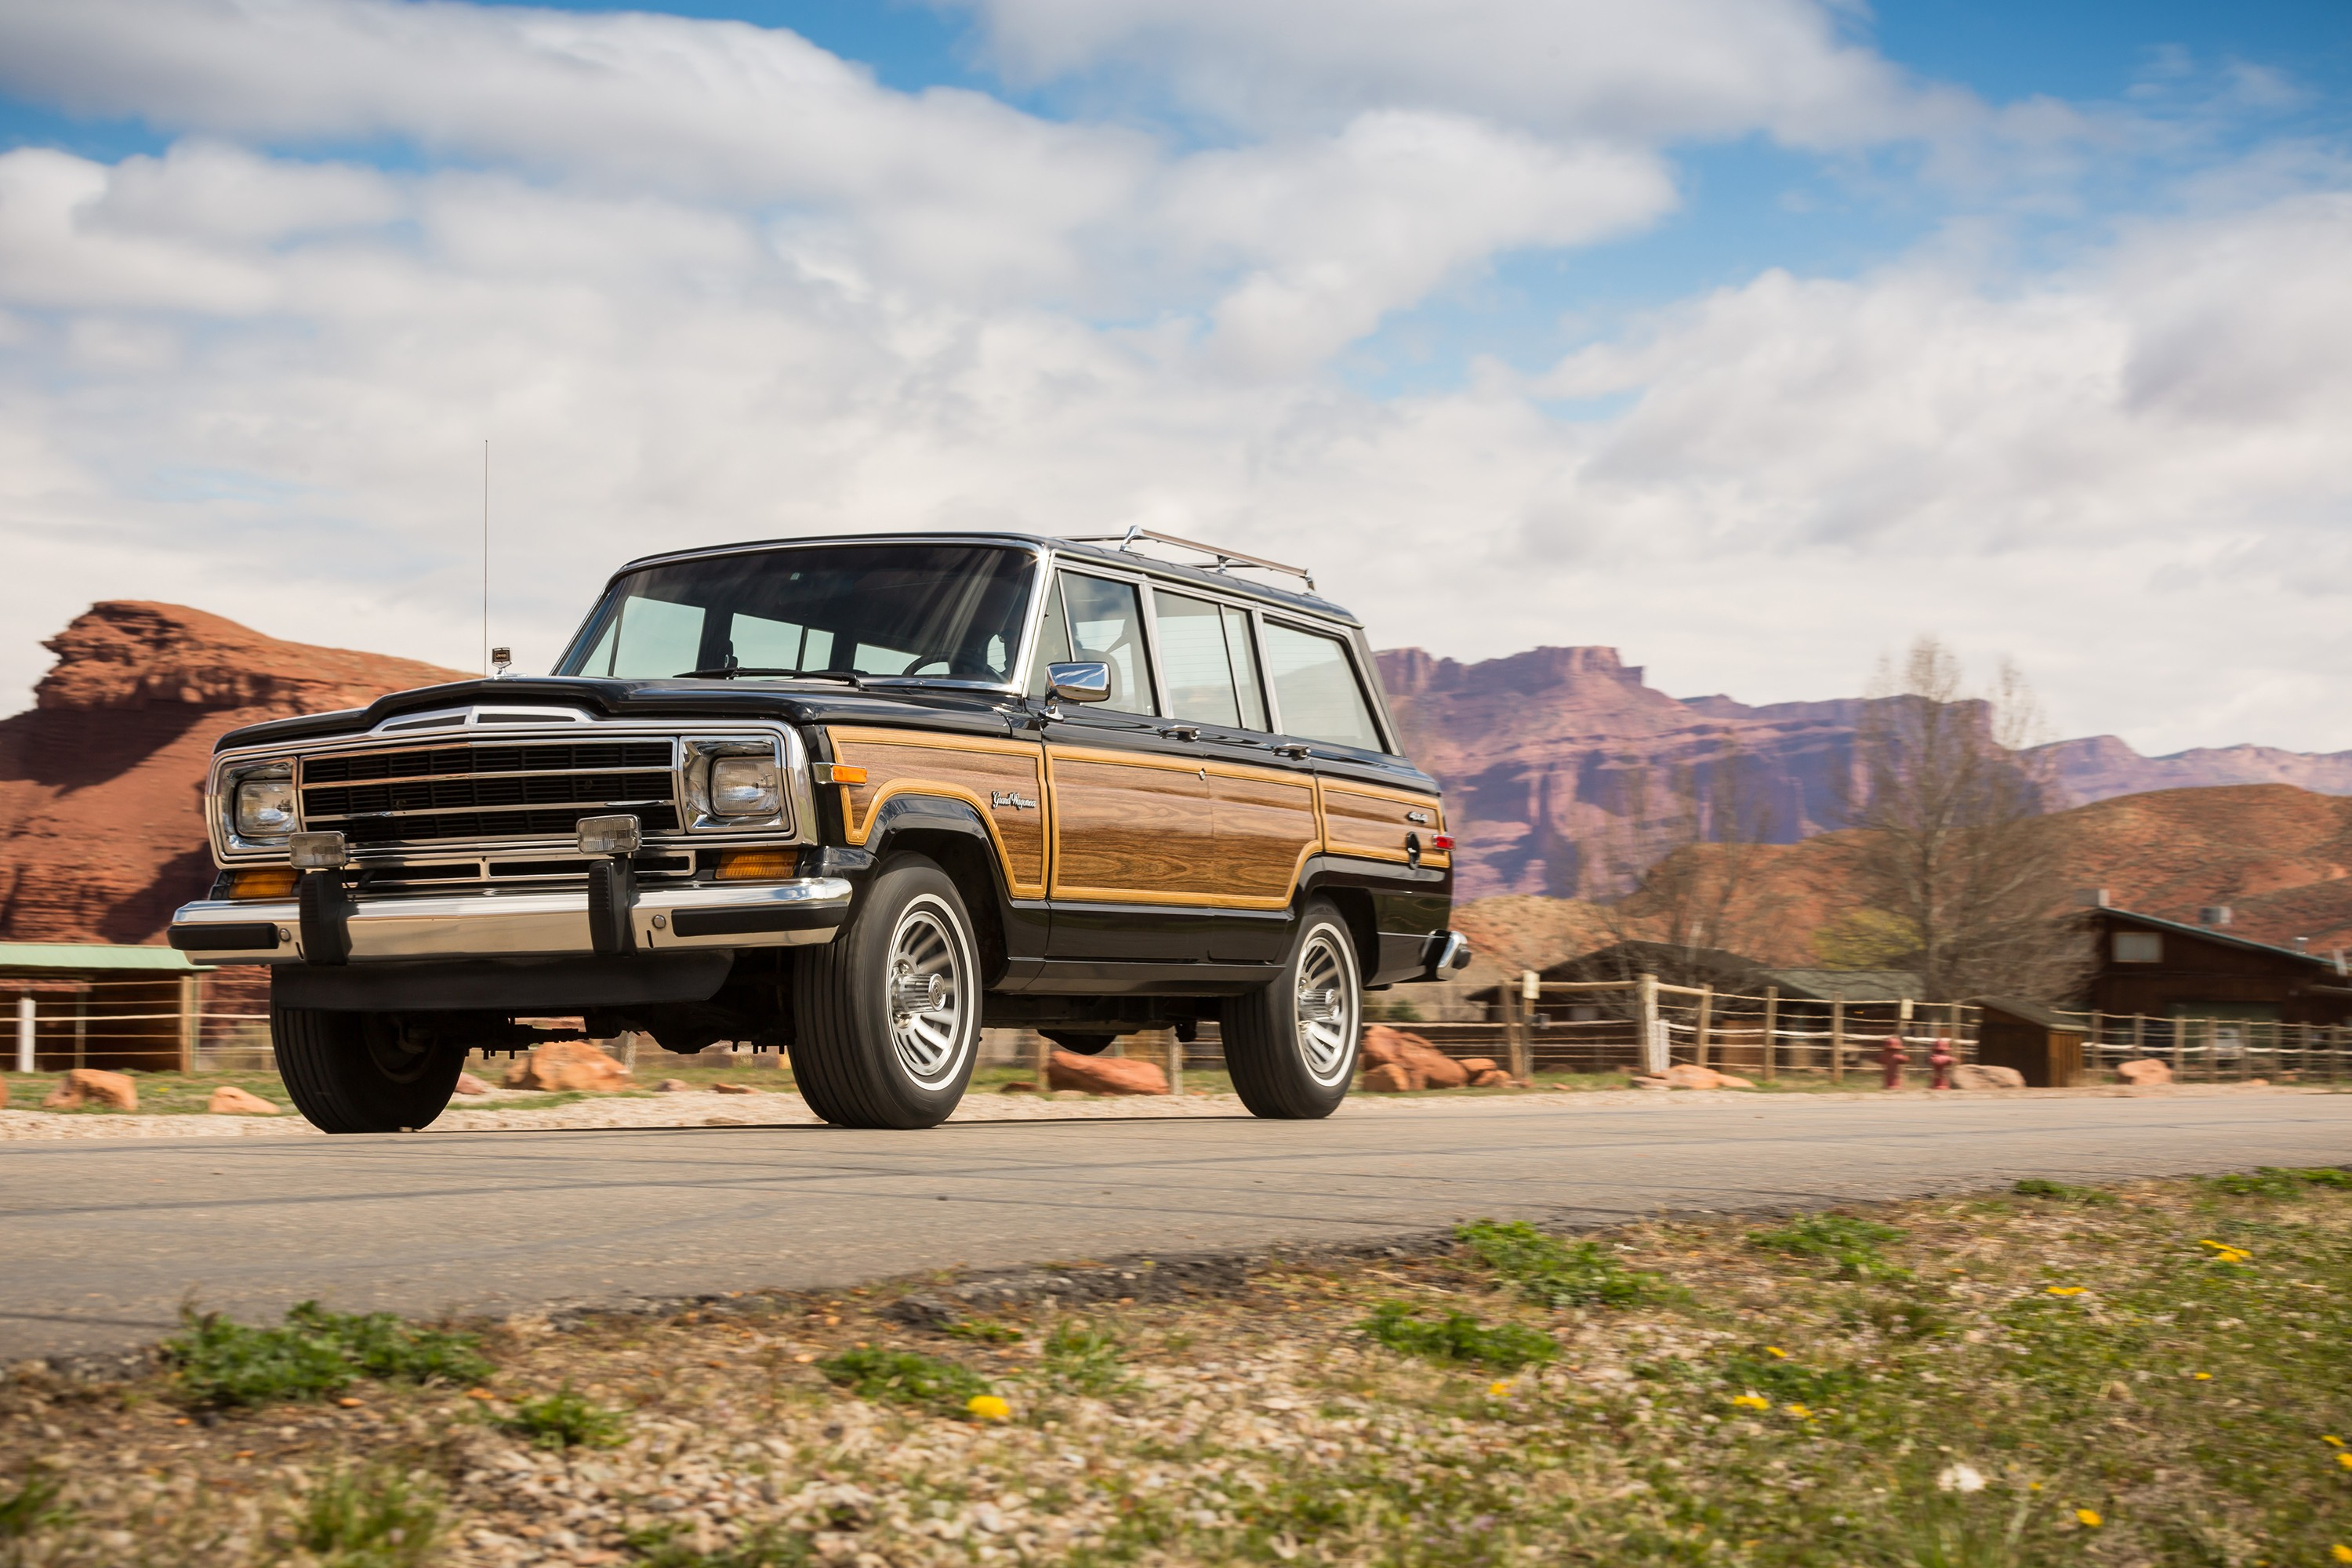 fully loaded 2019 jeep grand wagoneer could sell for as much as  140 000